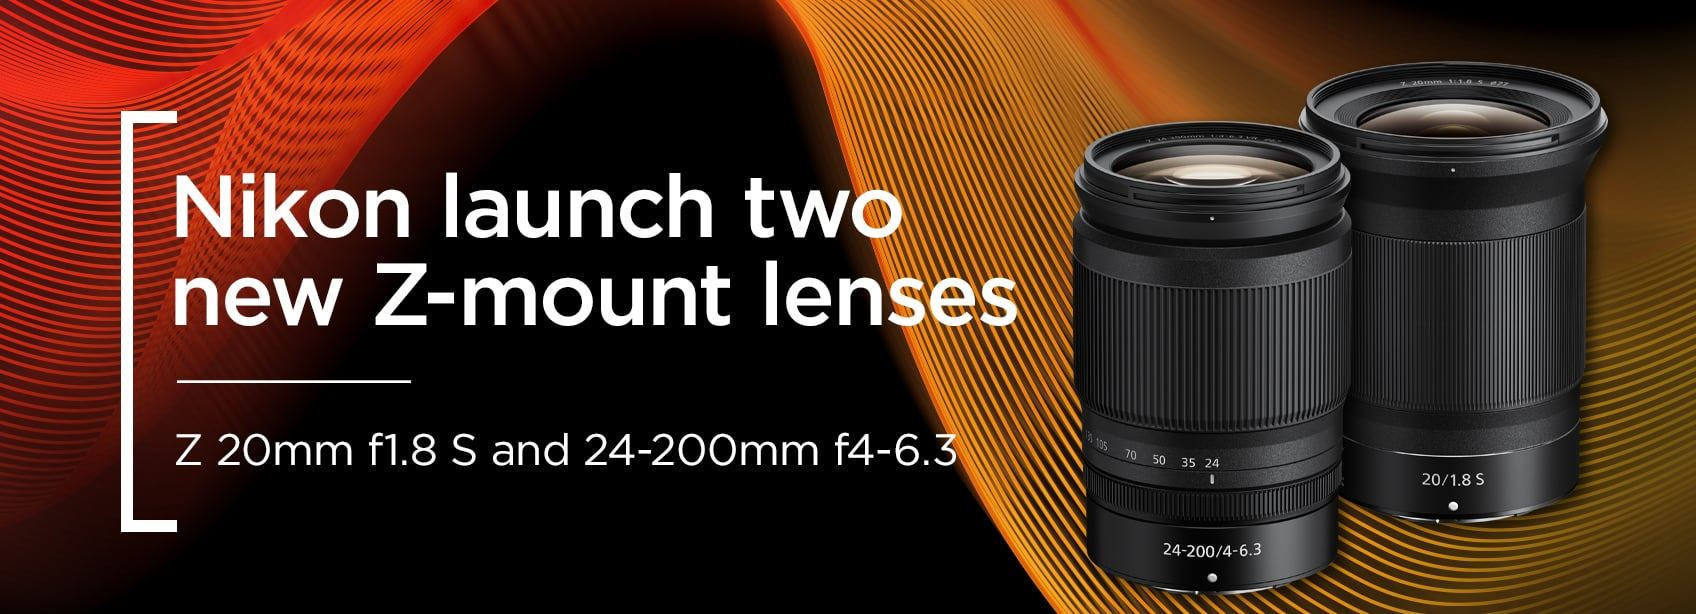 Nikon launch two new Z-mount lenses - Z 20mm f1.8 S and 24-200mm f4-6.3